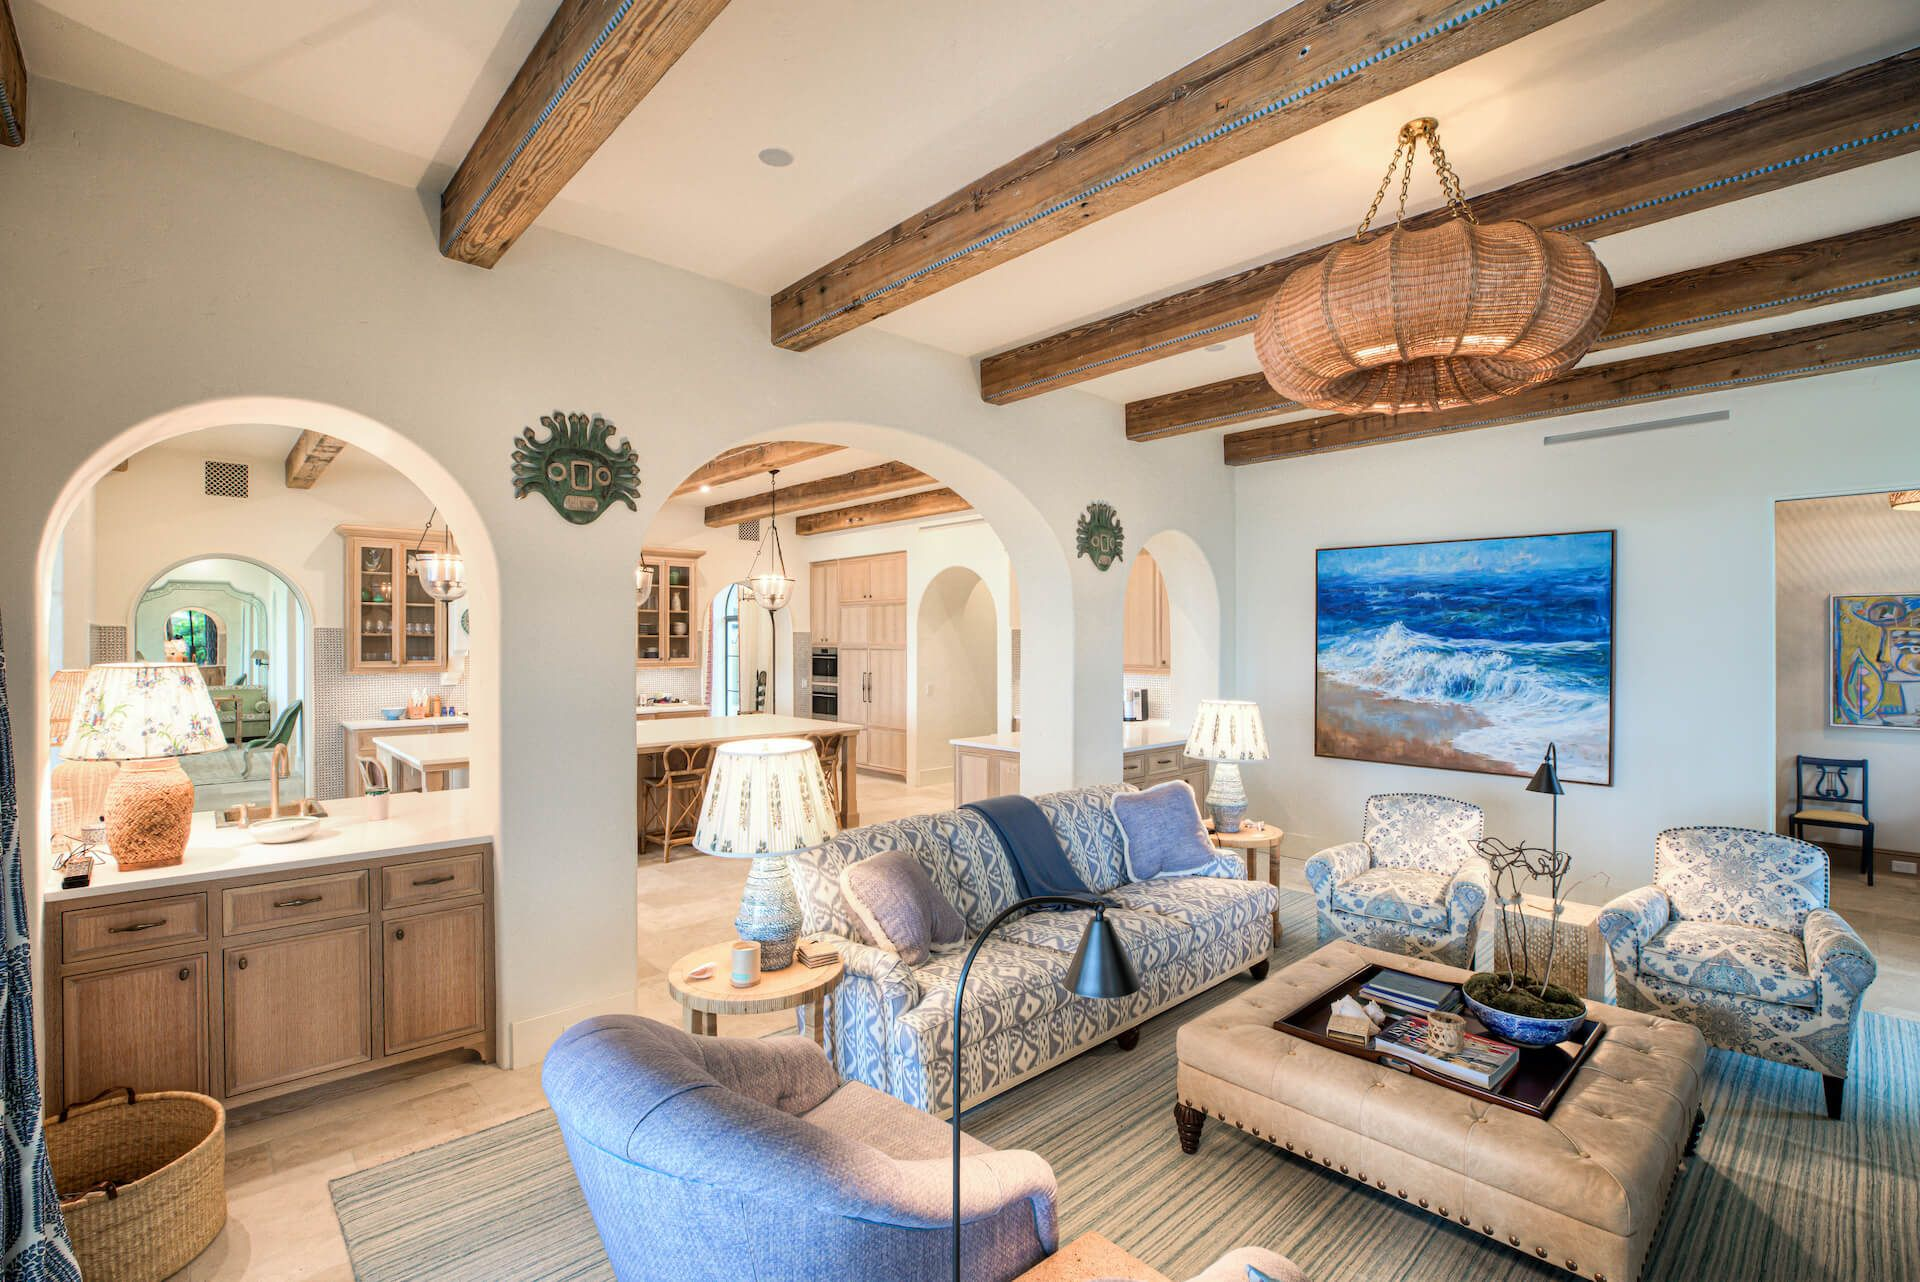 Living room with wood beams and high end furnishings